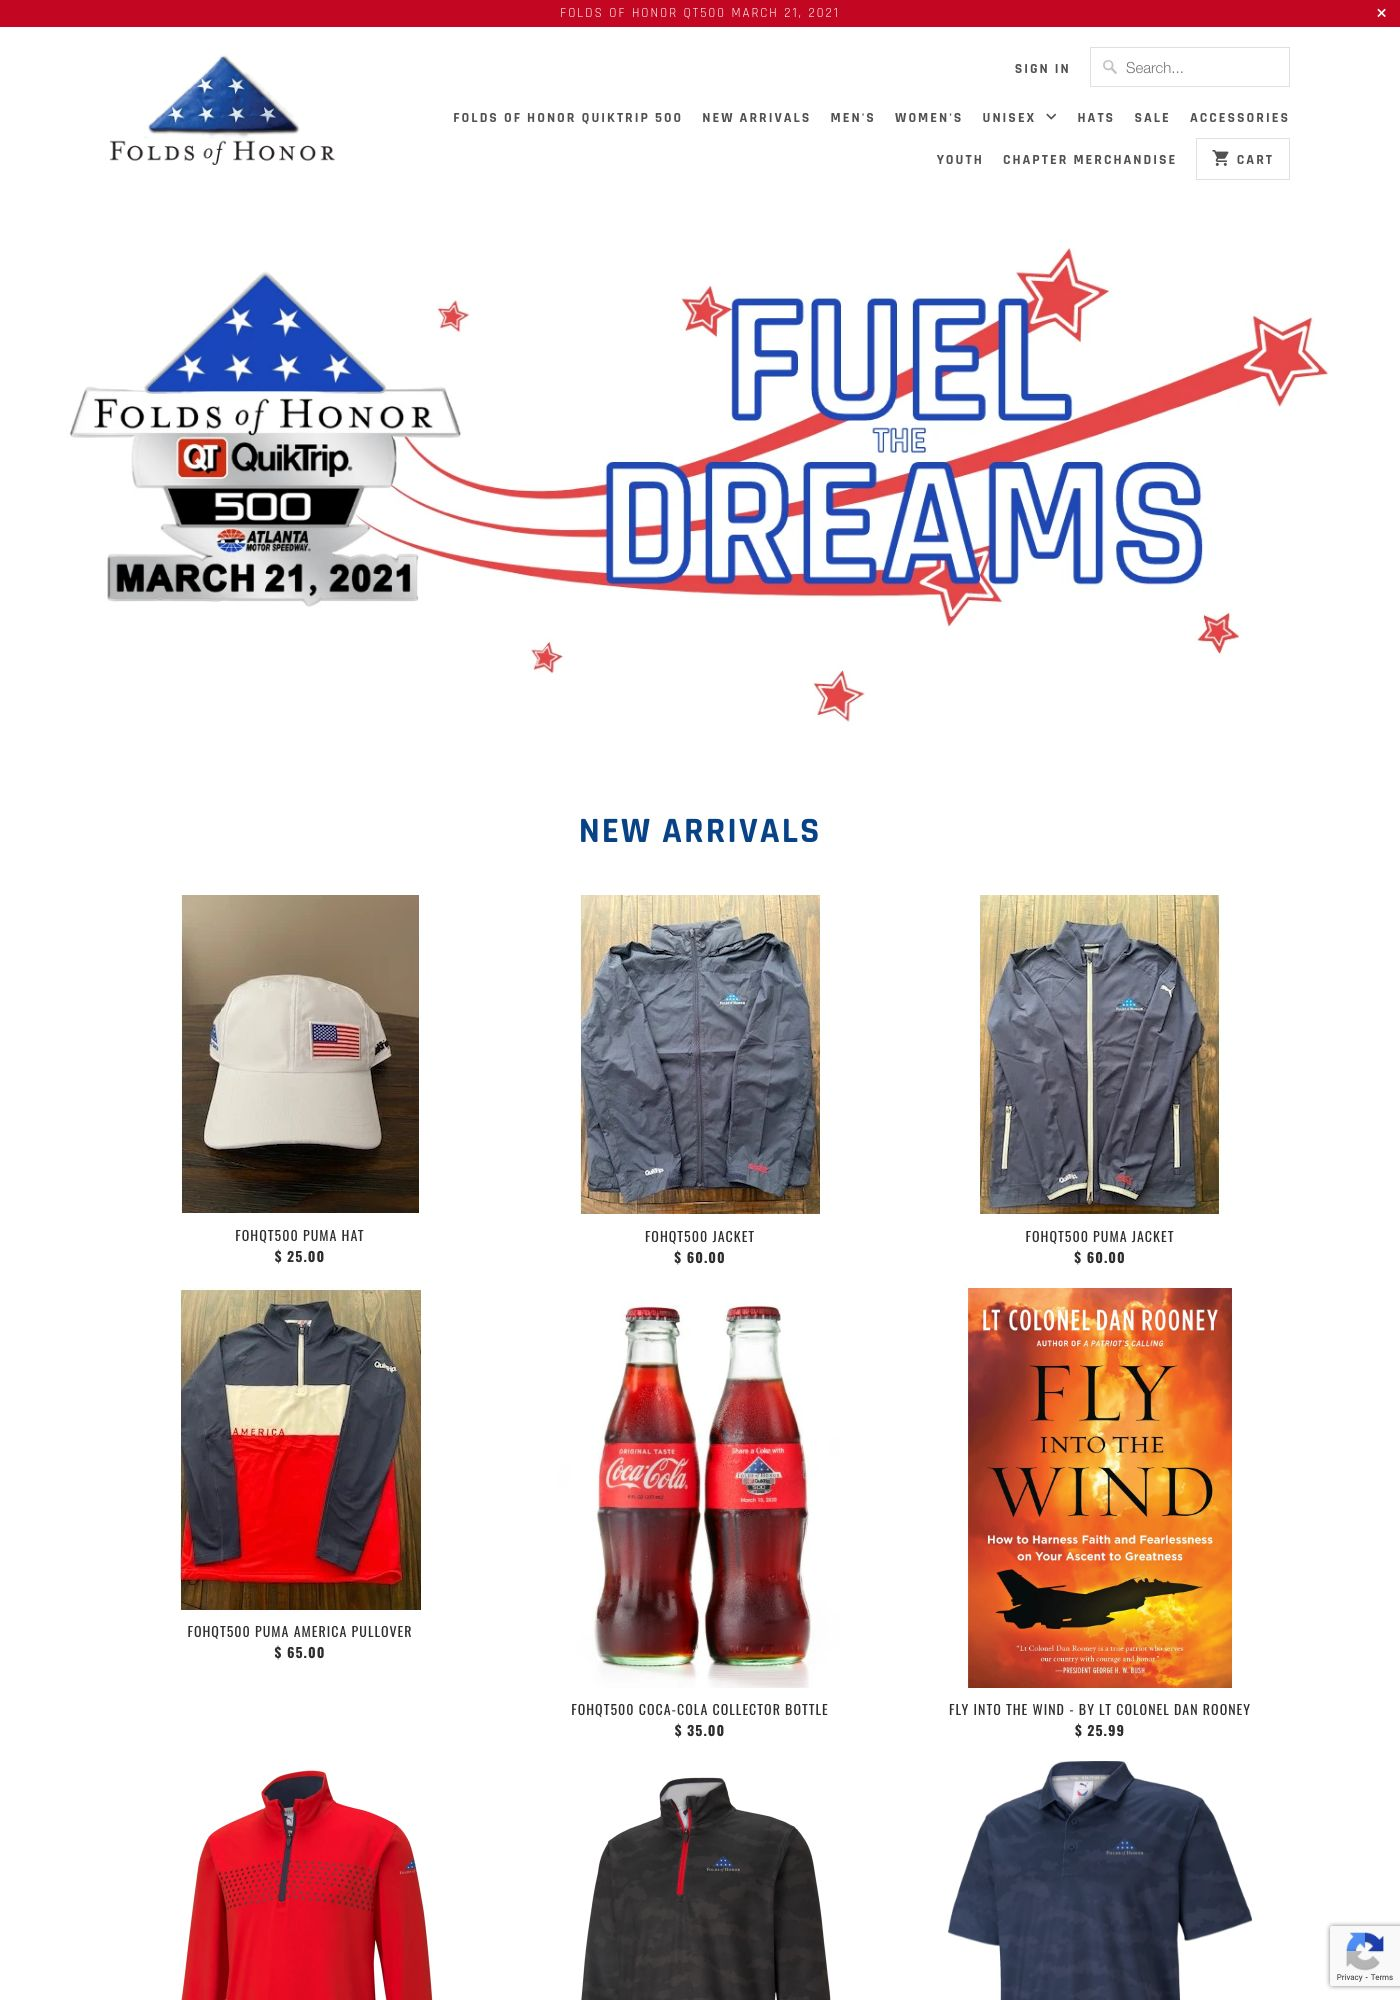 store.foldsofhonor.org